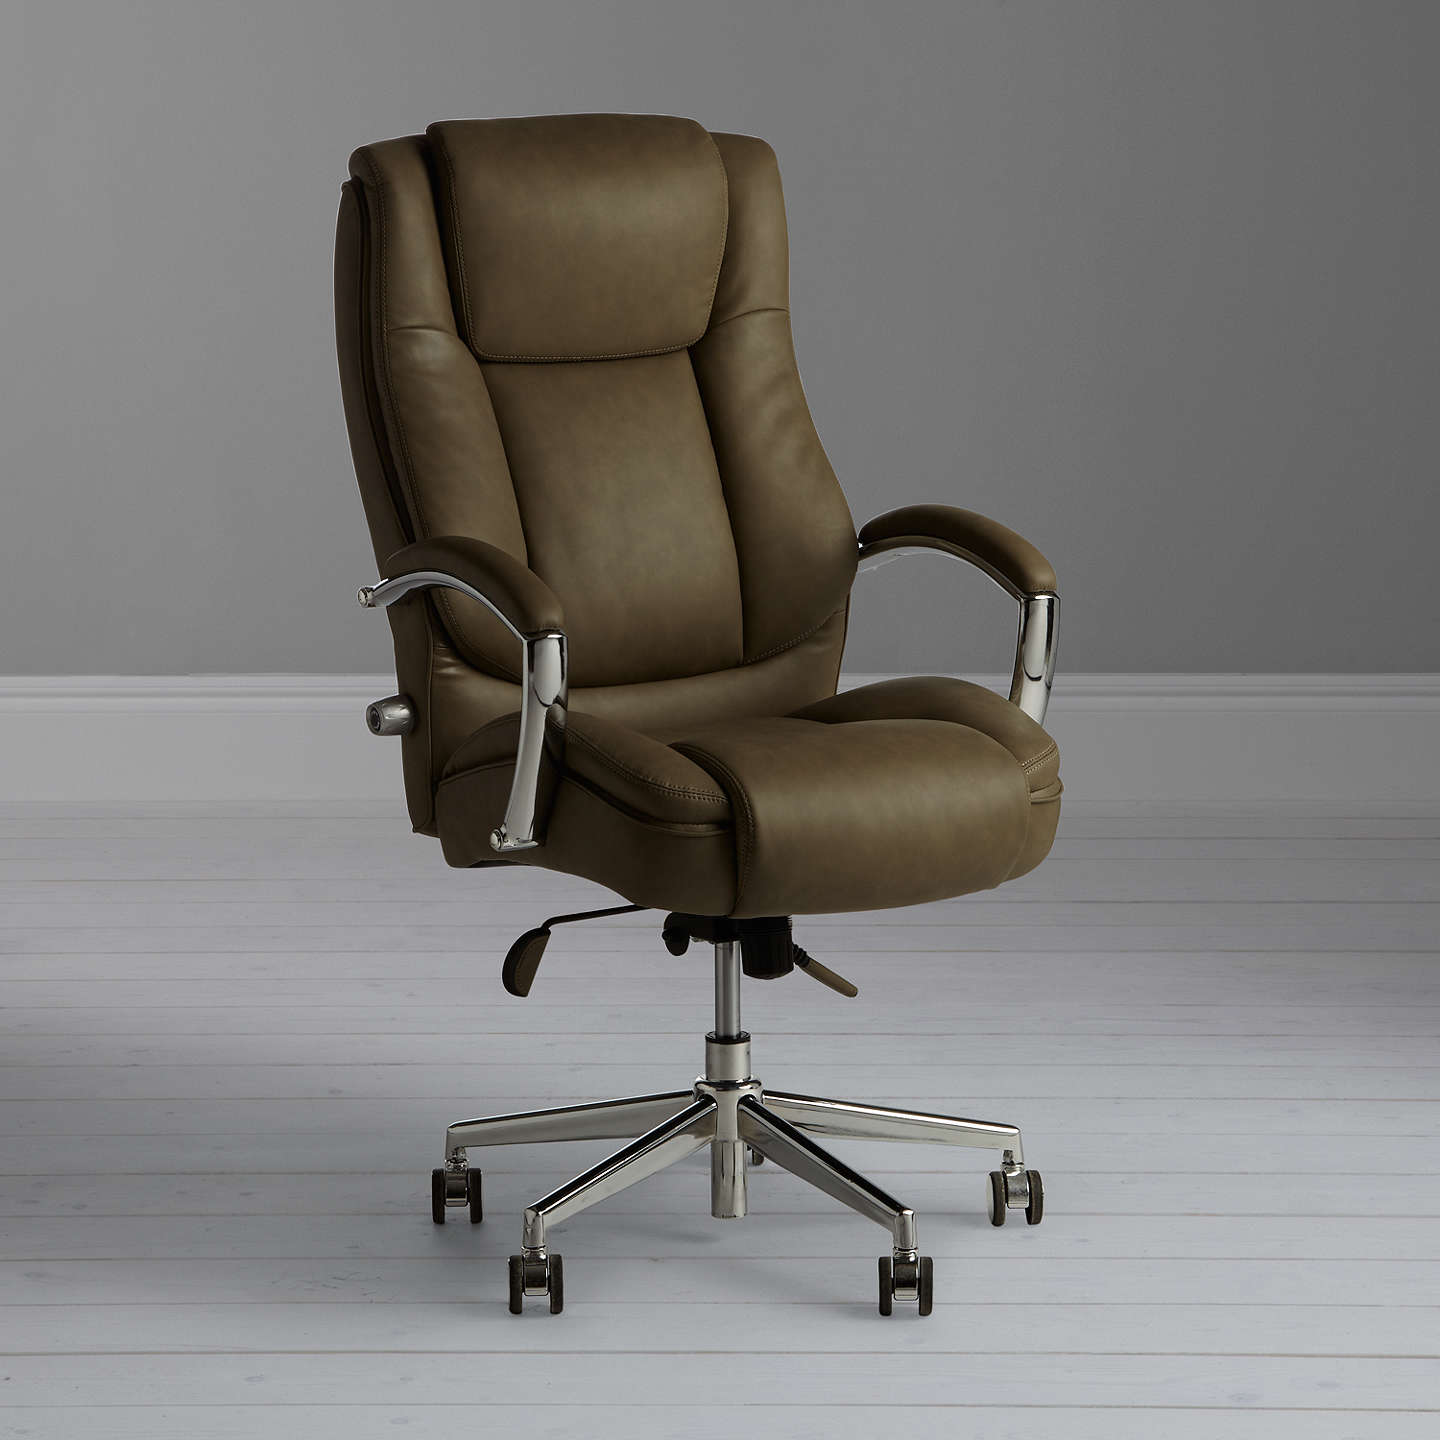 office chairs john lewis. BuyJohn Lewis Jefferson Office Chair, Lead Grey Online At Johnlewis.com Chairs John W